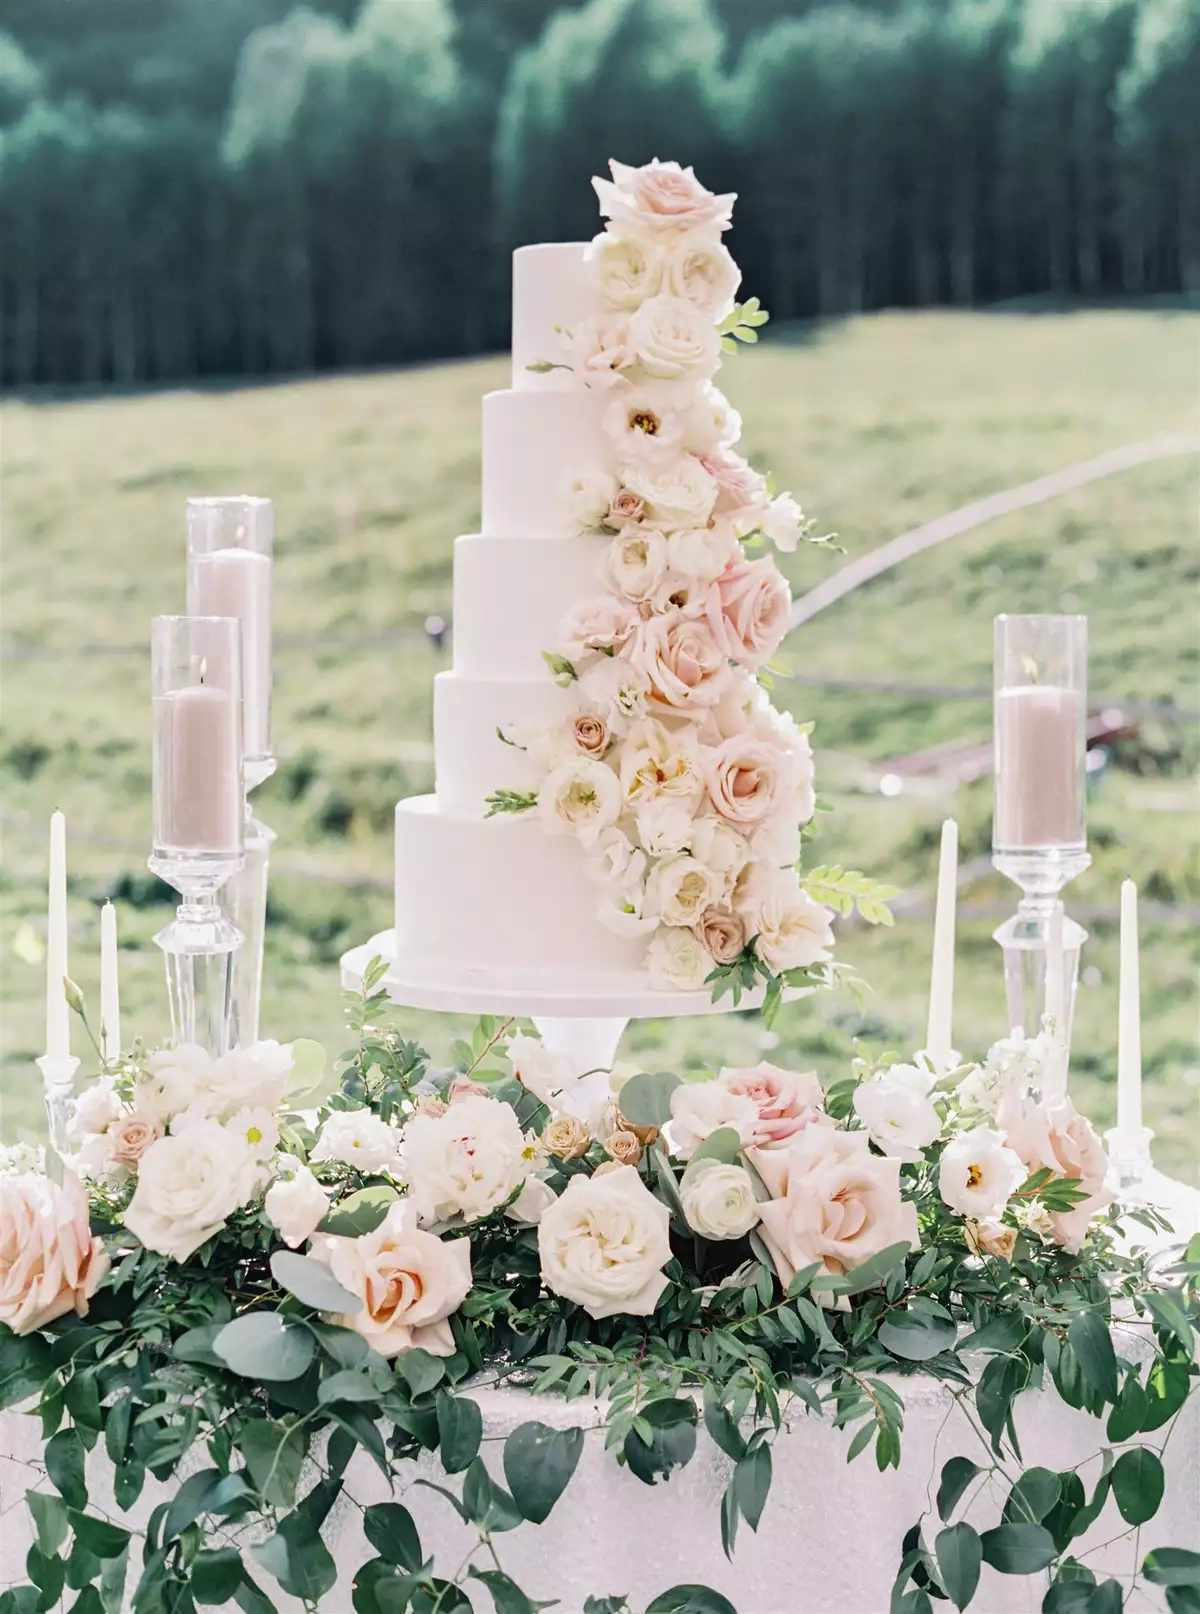 wedding cake with roses and greenery